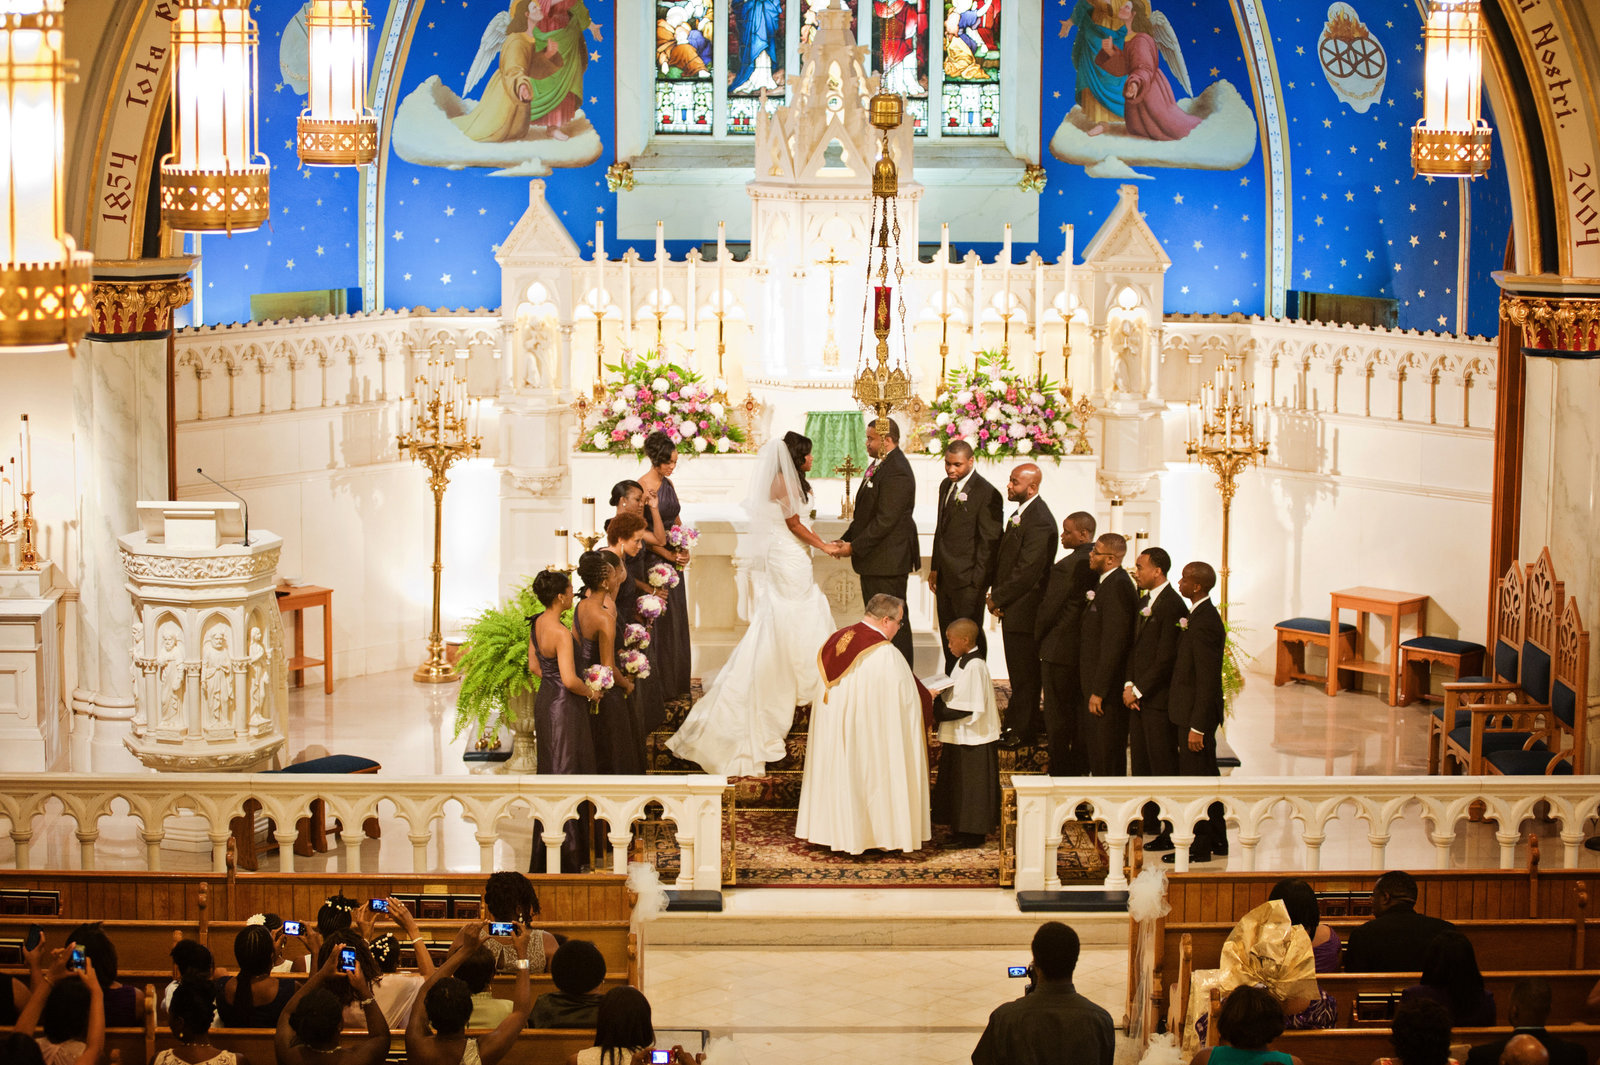 Philadelphia Wedding at Ballroom at the Ben reception ceremony at Our Lady of Lourdes in Philadelphia photo by Jen Childress Photography